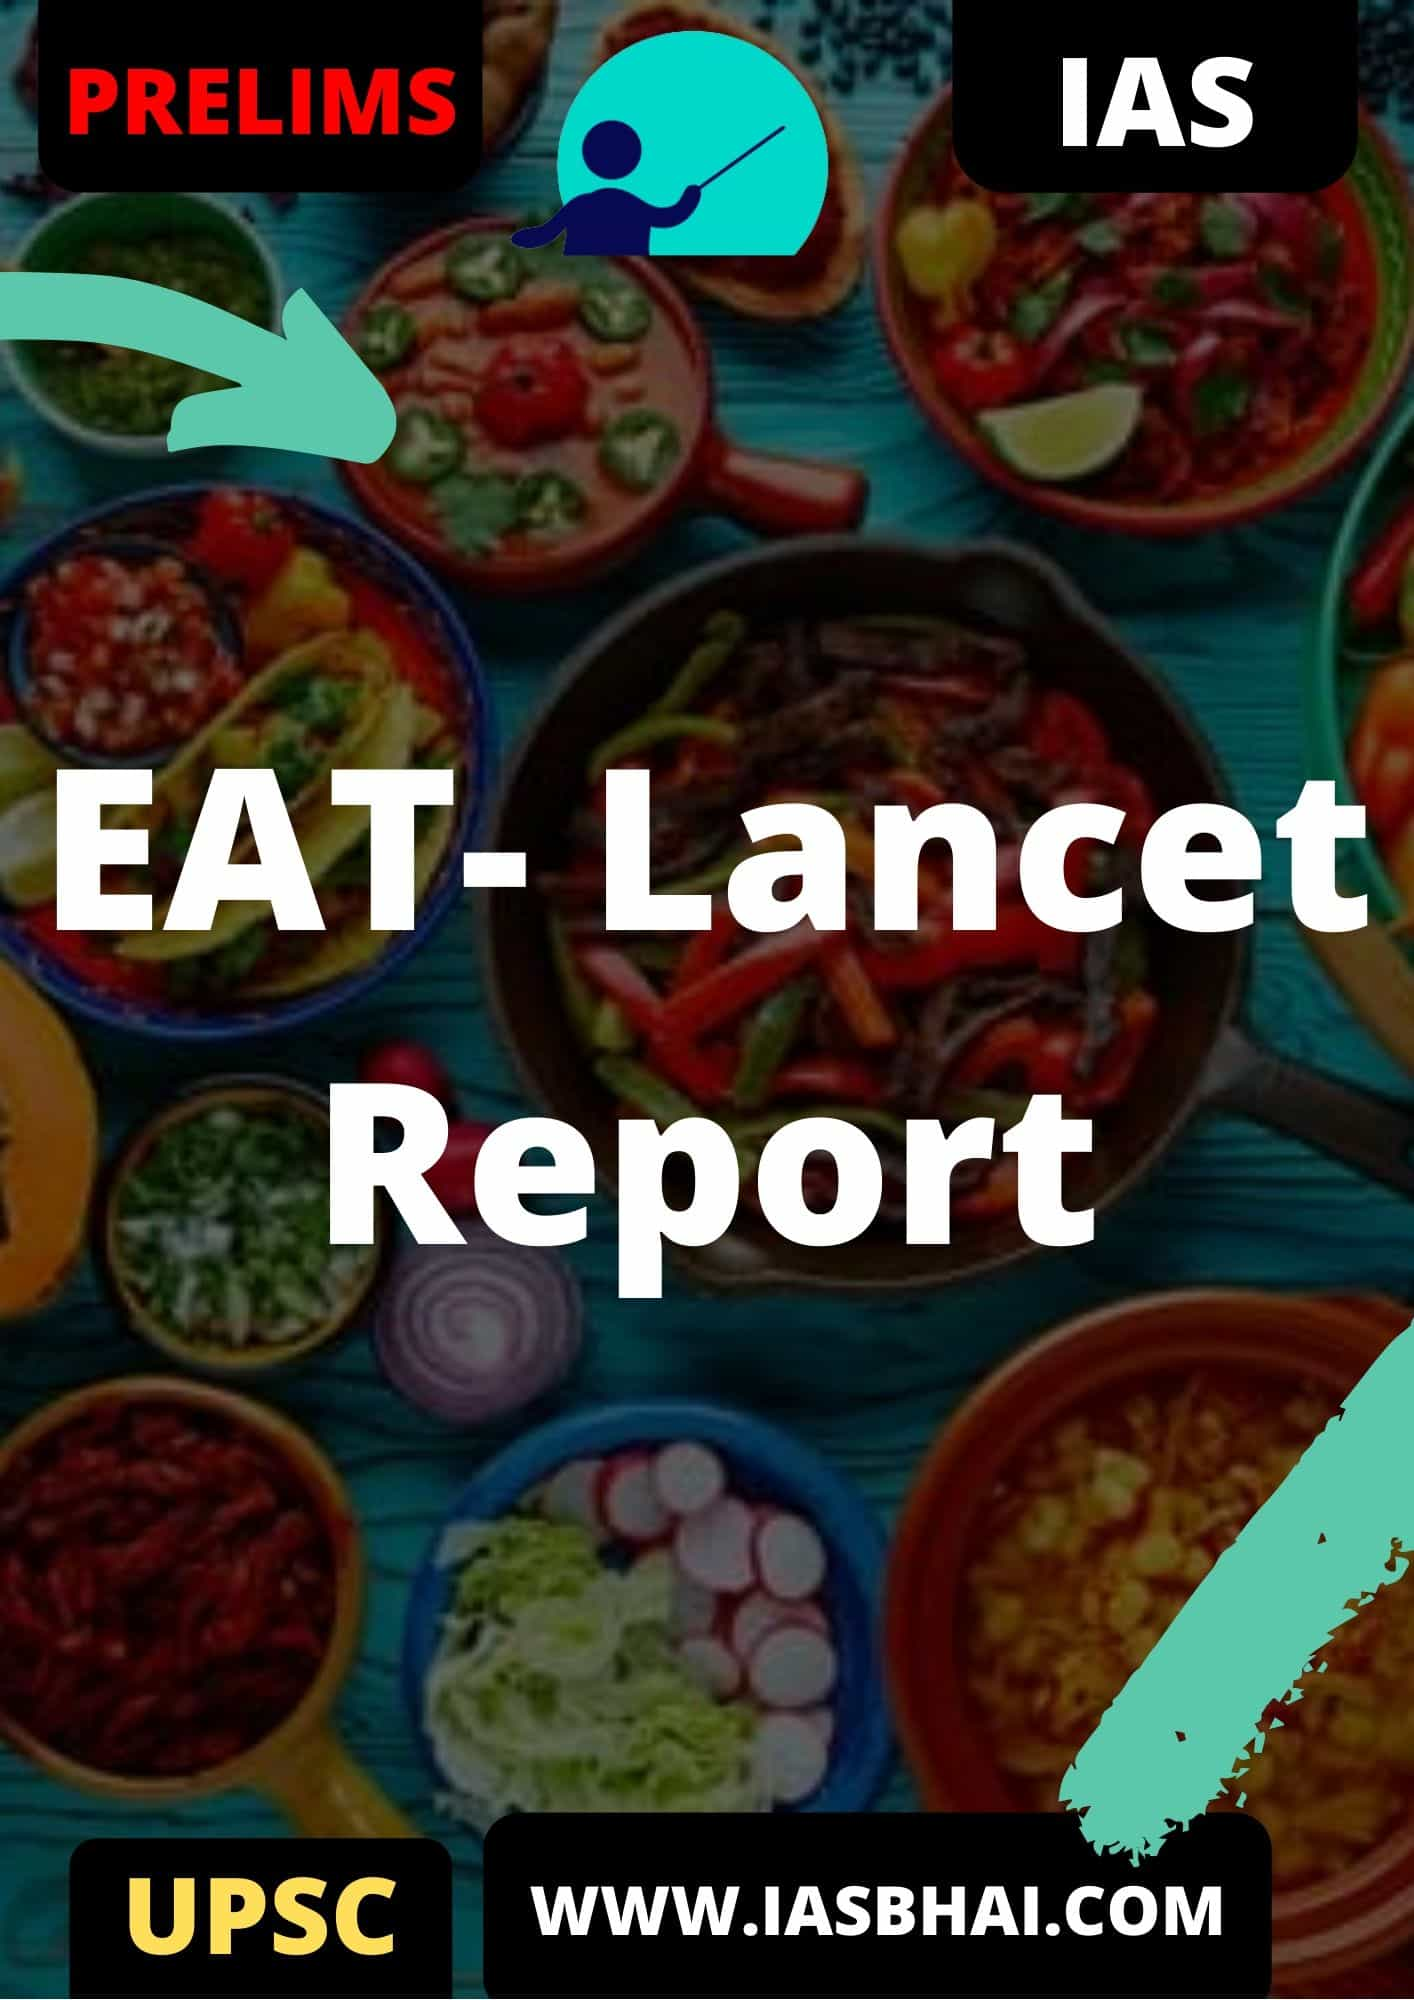 EAT-Lancet Commission Report | UPSC